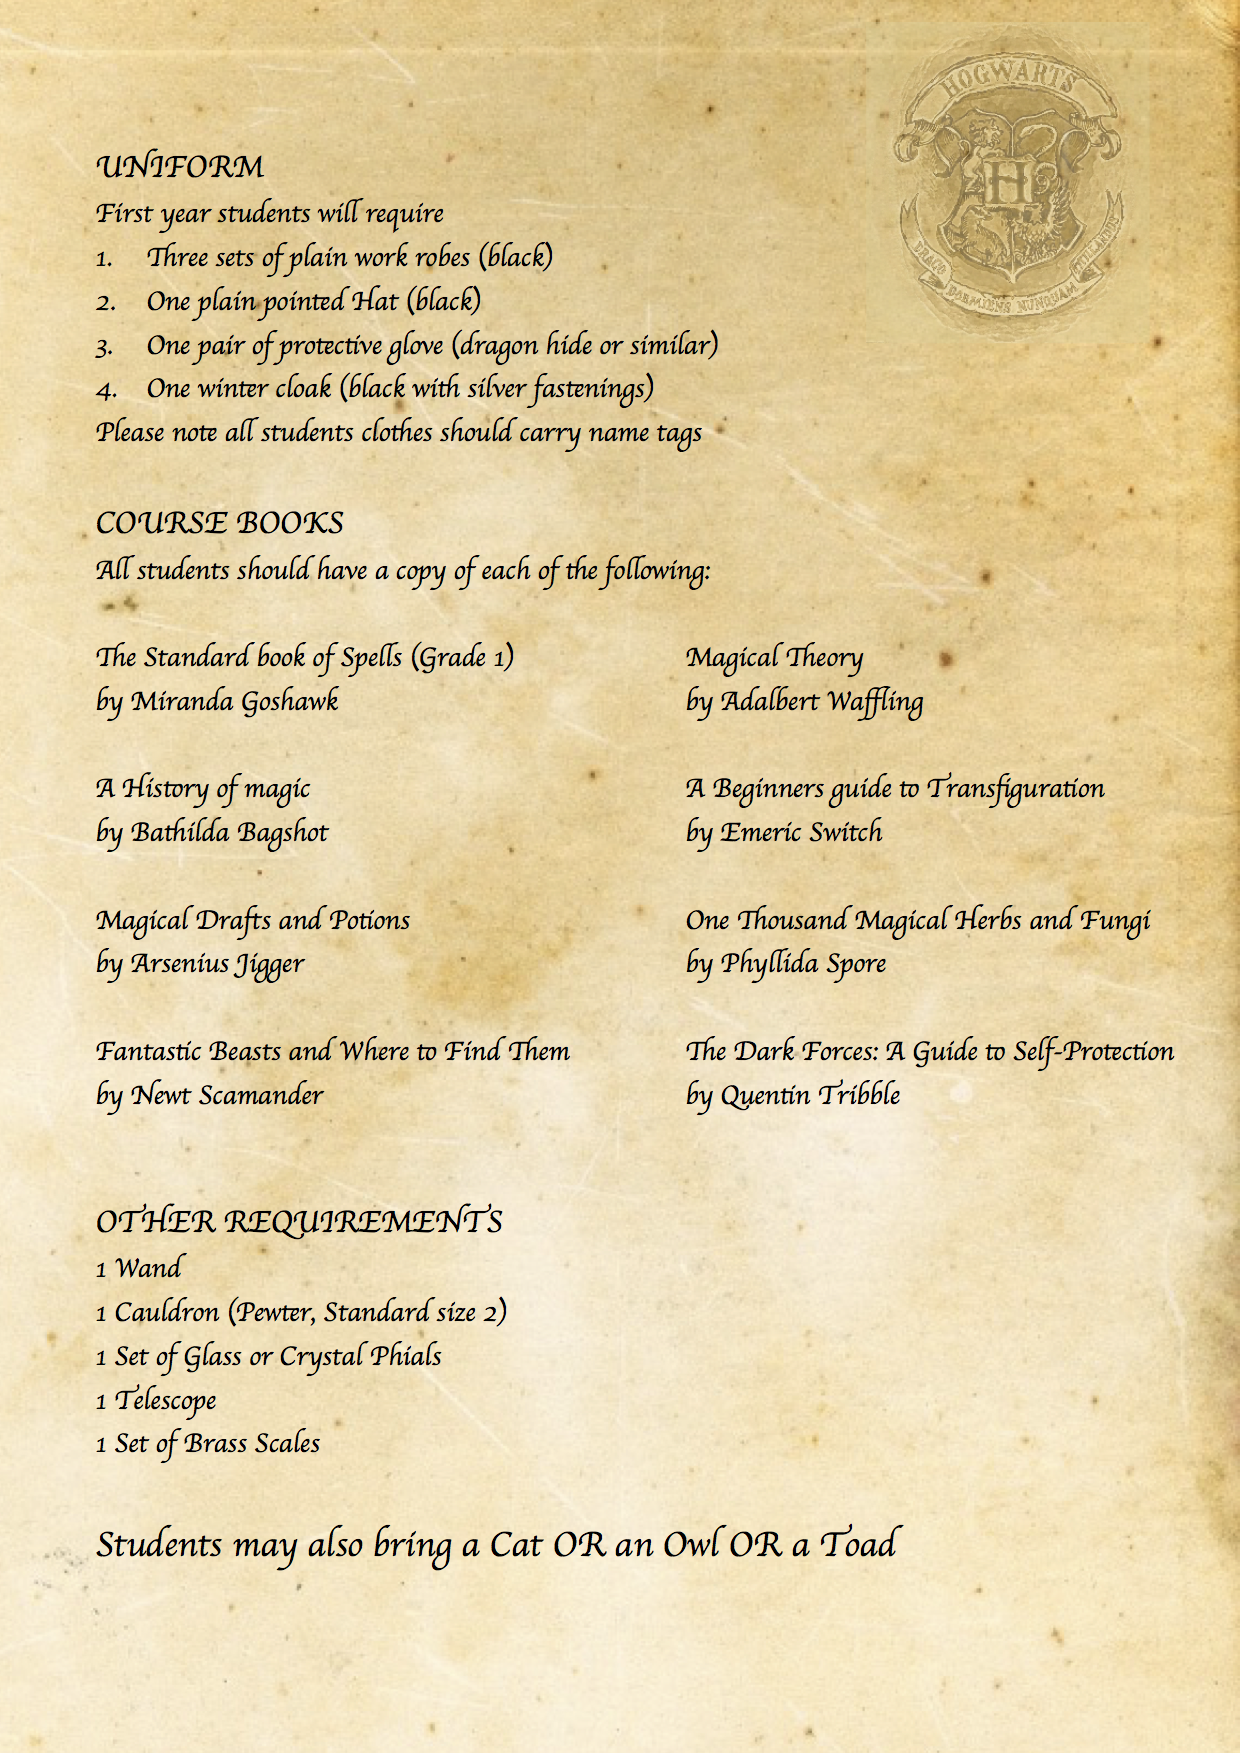 Harry Potter DIY Hogwarts Acceptance Letter Requirement